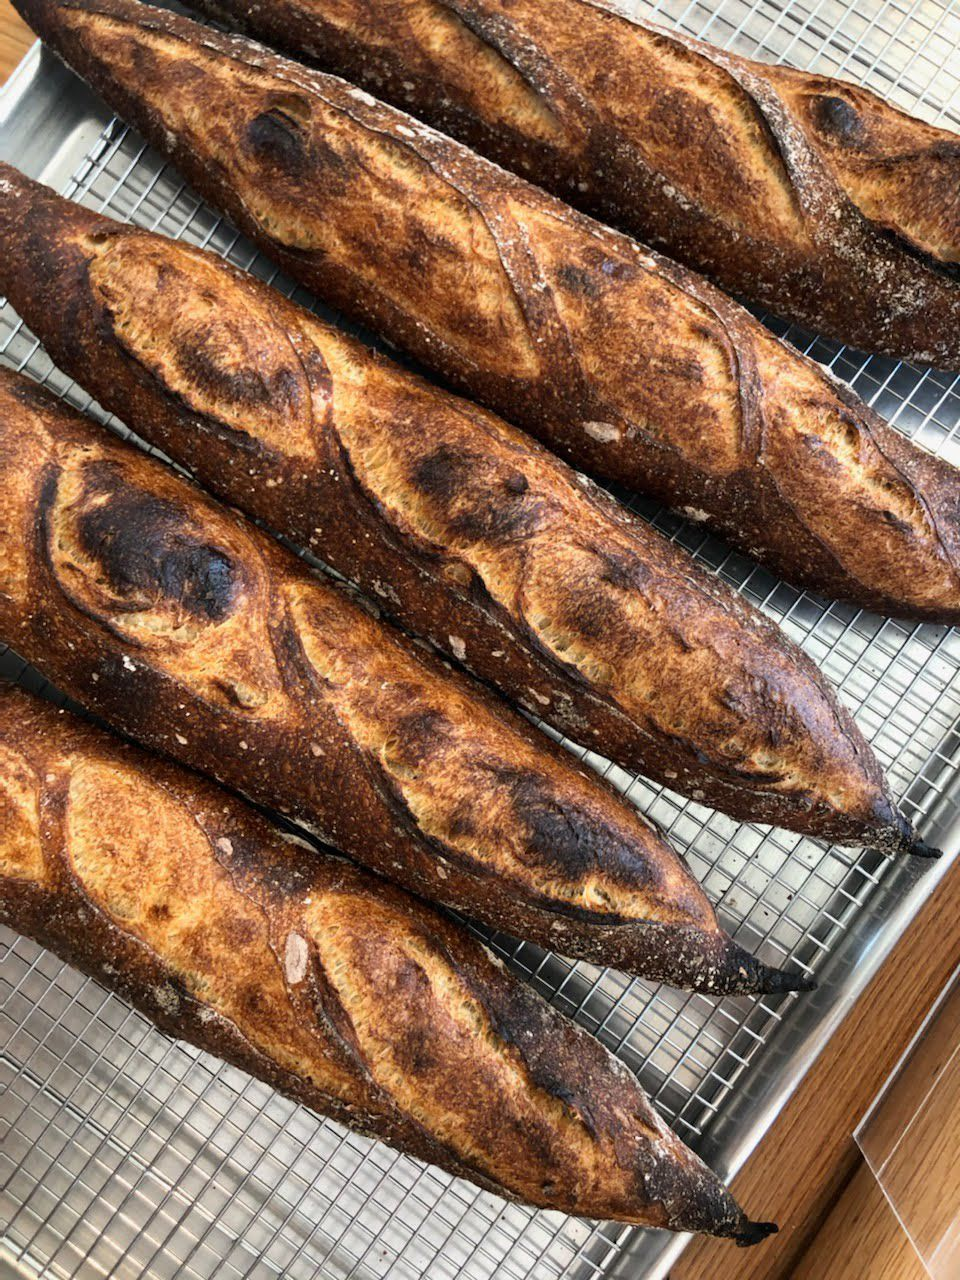 Rows of baguettes